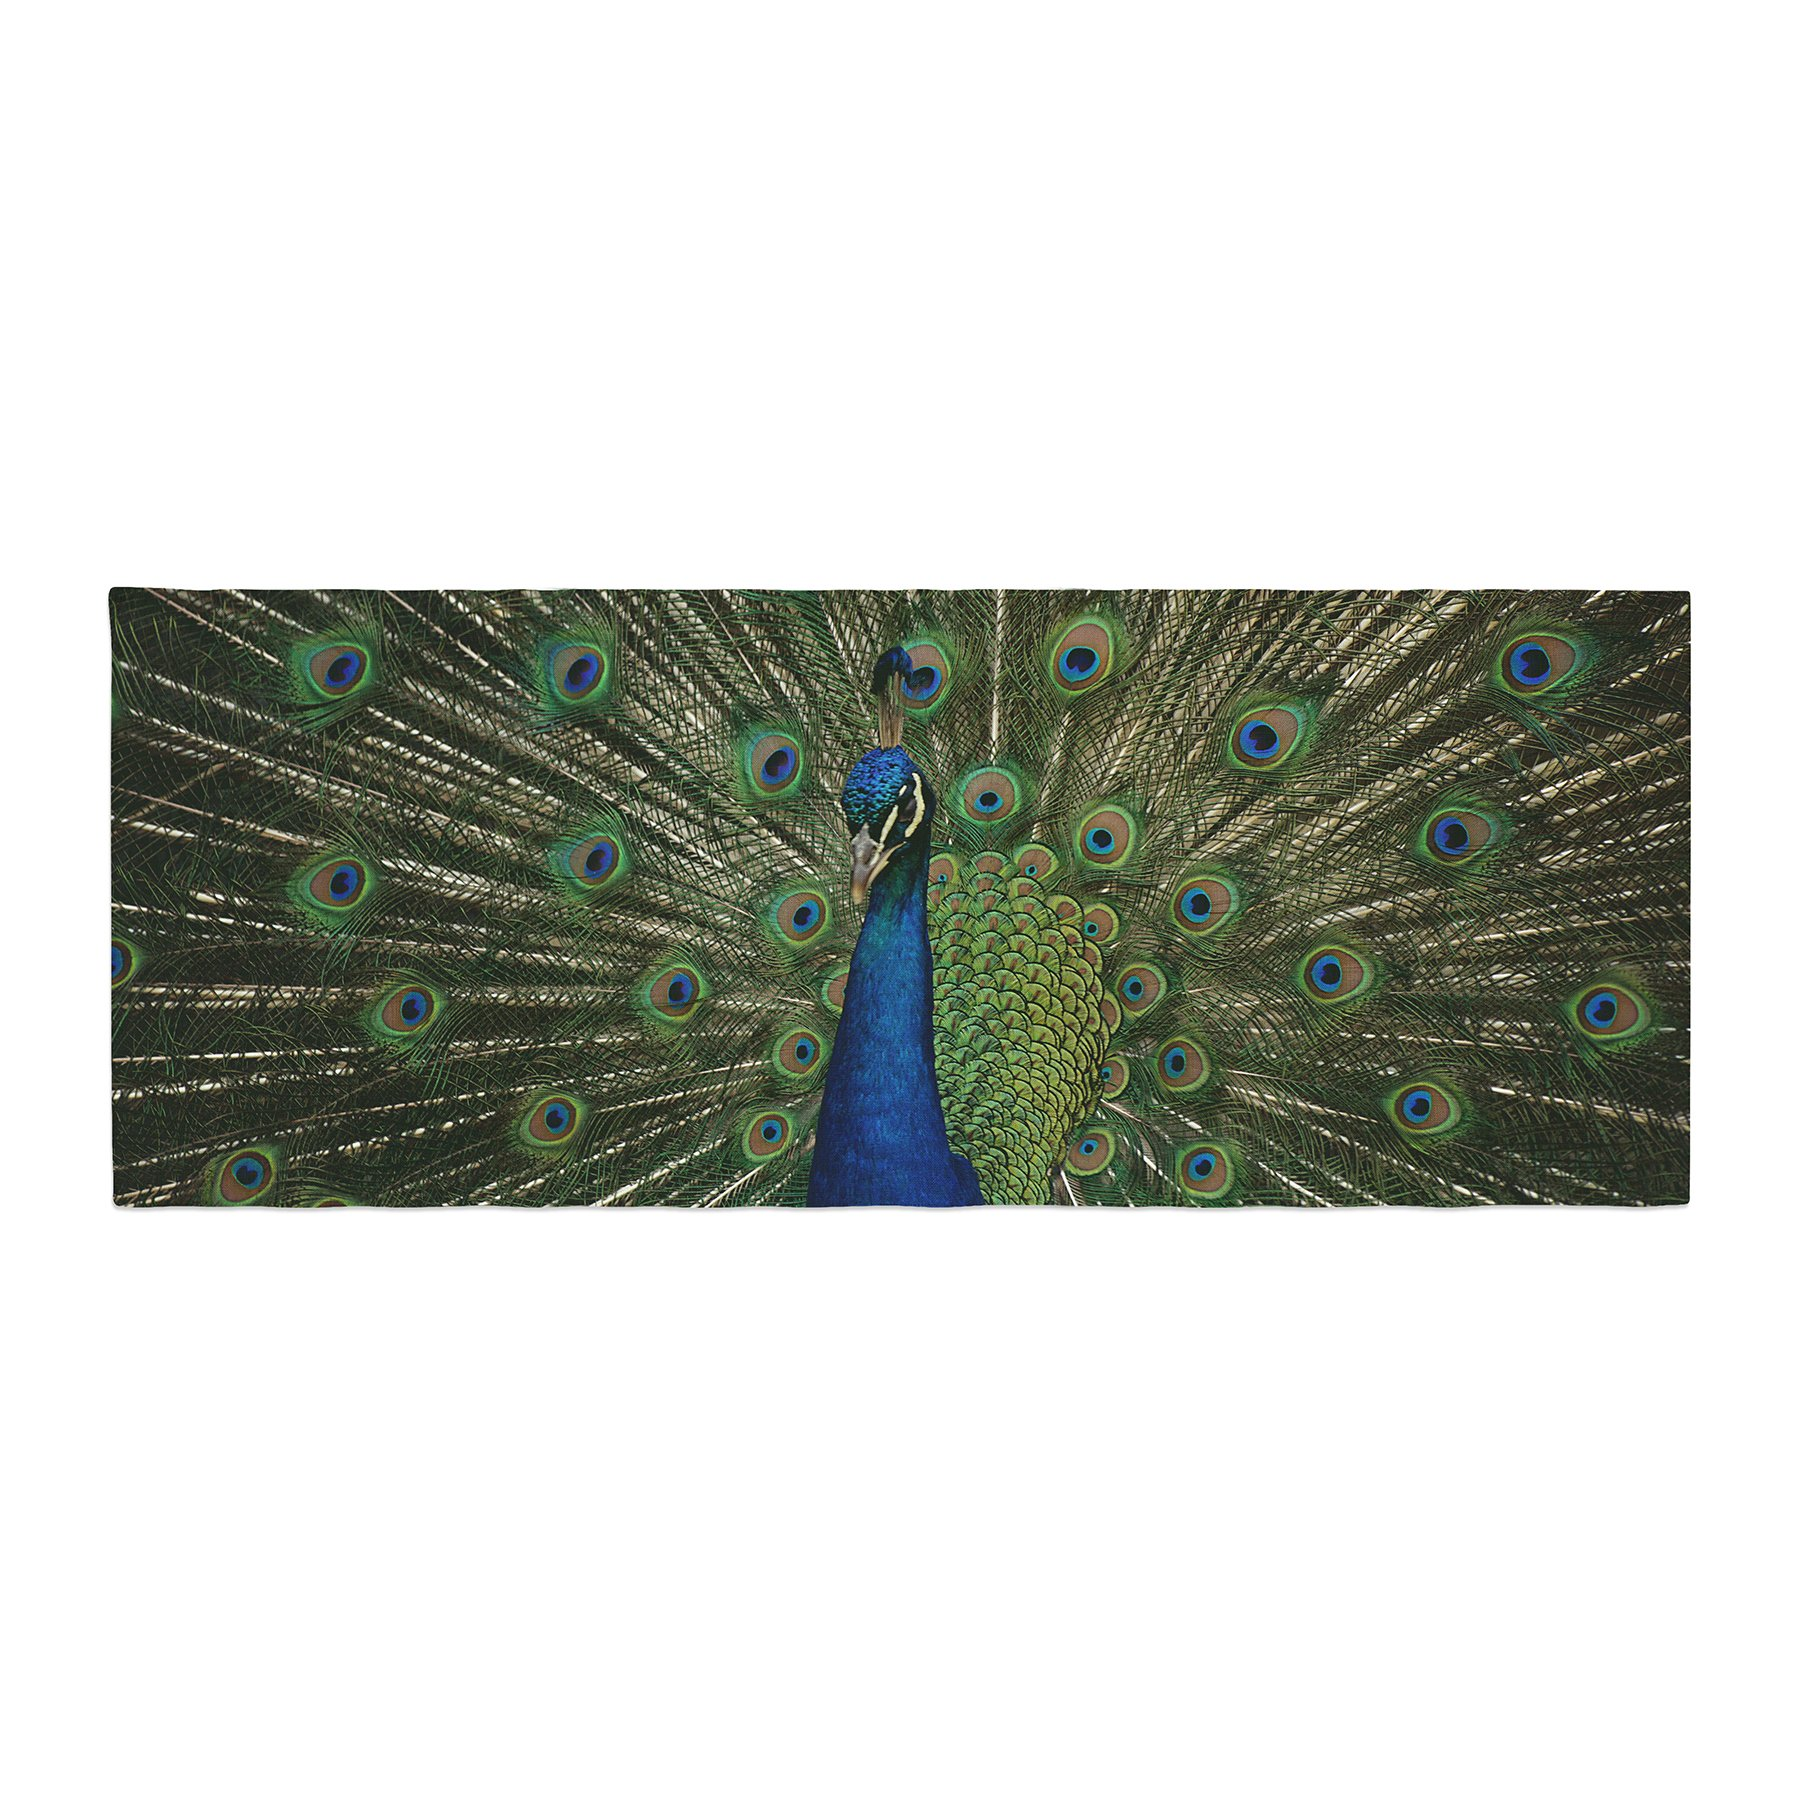 Kess InHouse Angie Turner Proud Peacock Blue Animals Bed Runner, 34'' x 86''